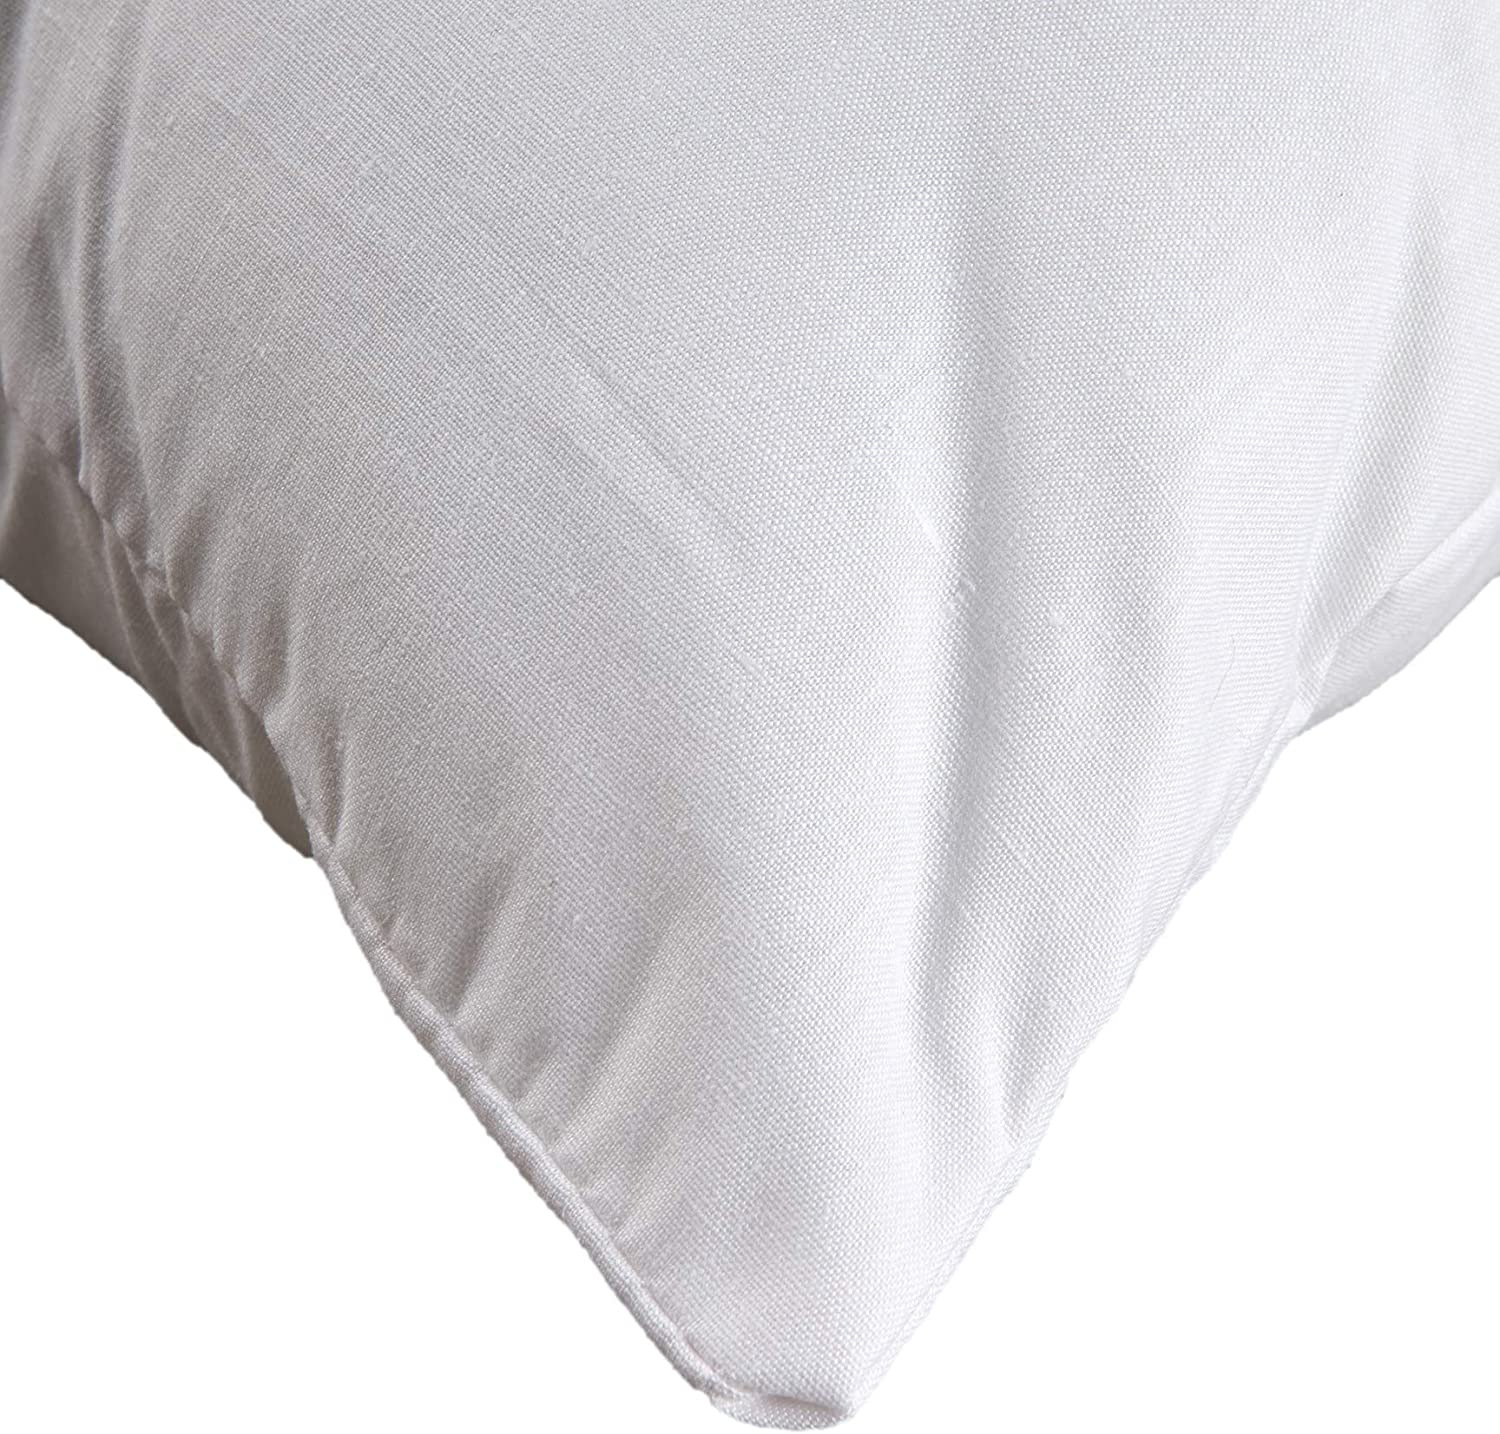 Fairfield Soft Touch Pillow 14in x 14in